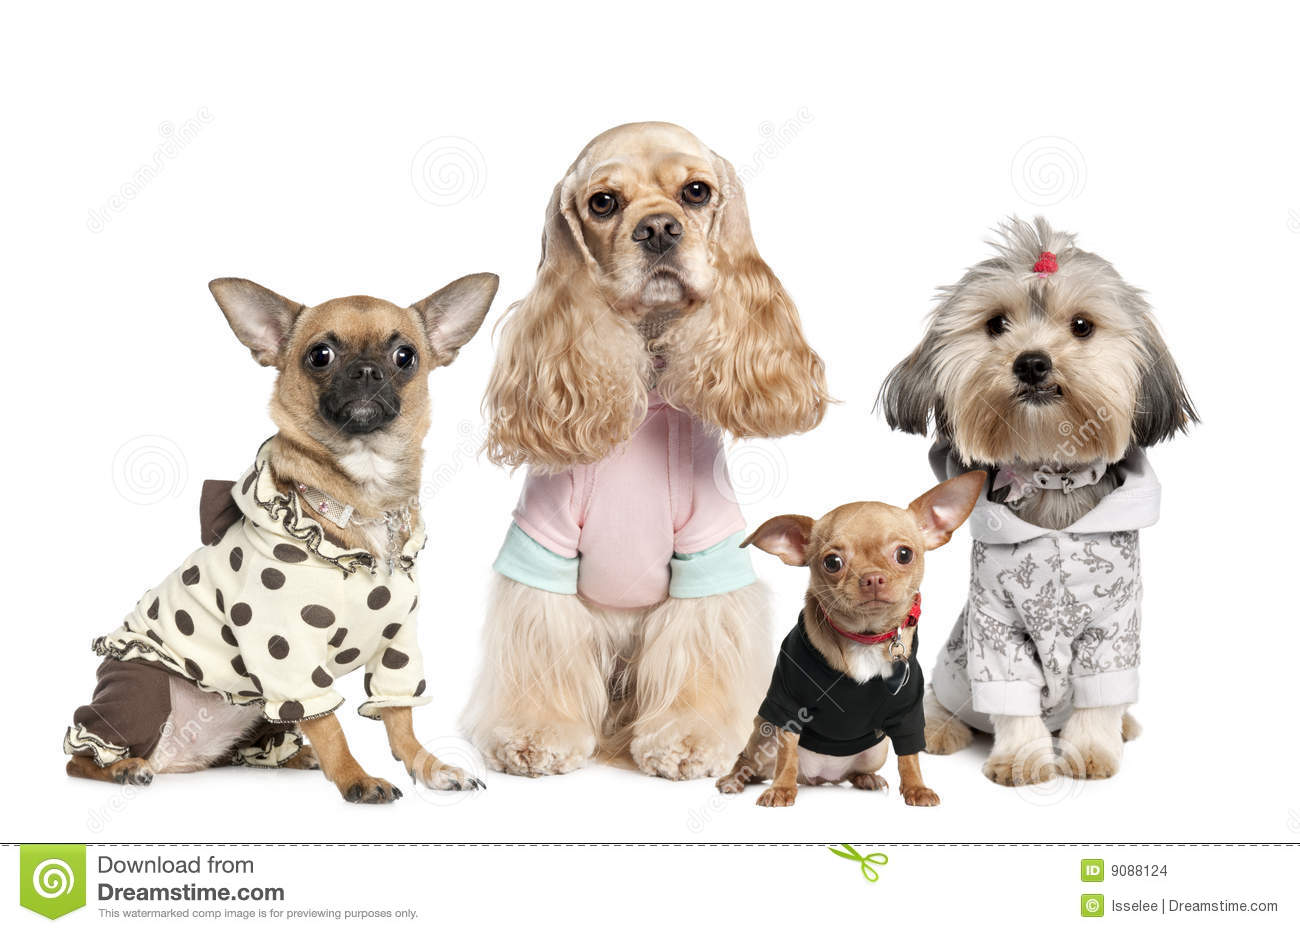 Group of 4 dogs dressed : chihuahua,shih tzu and C